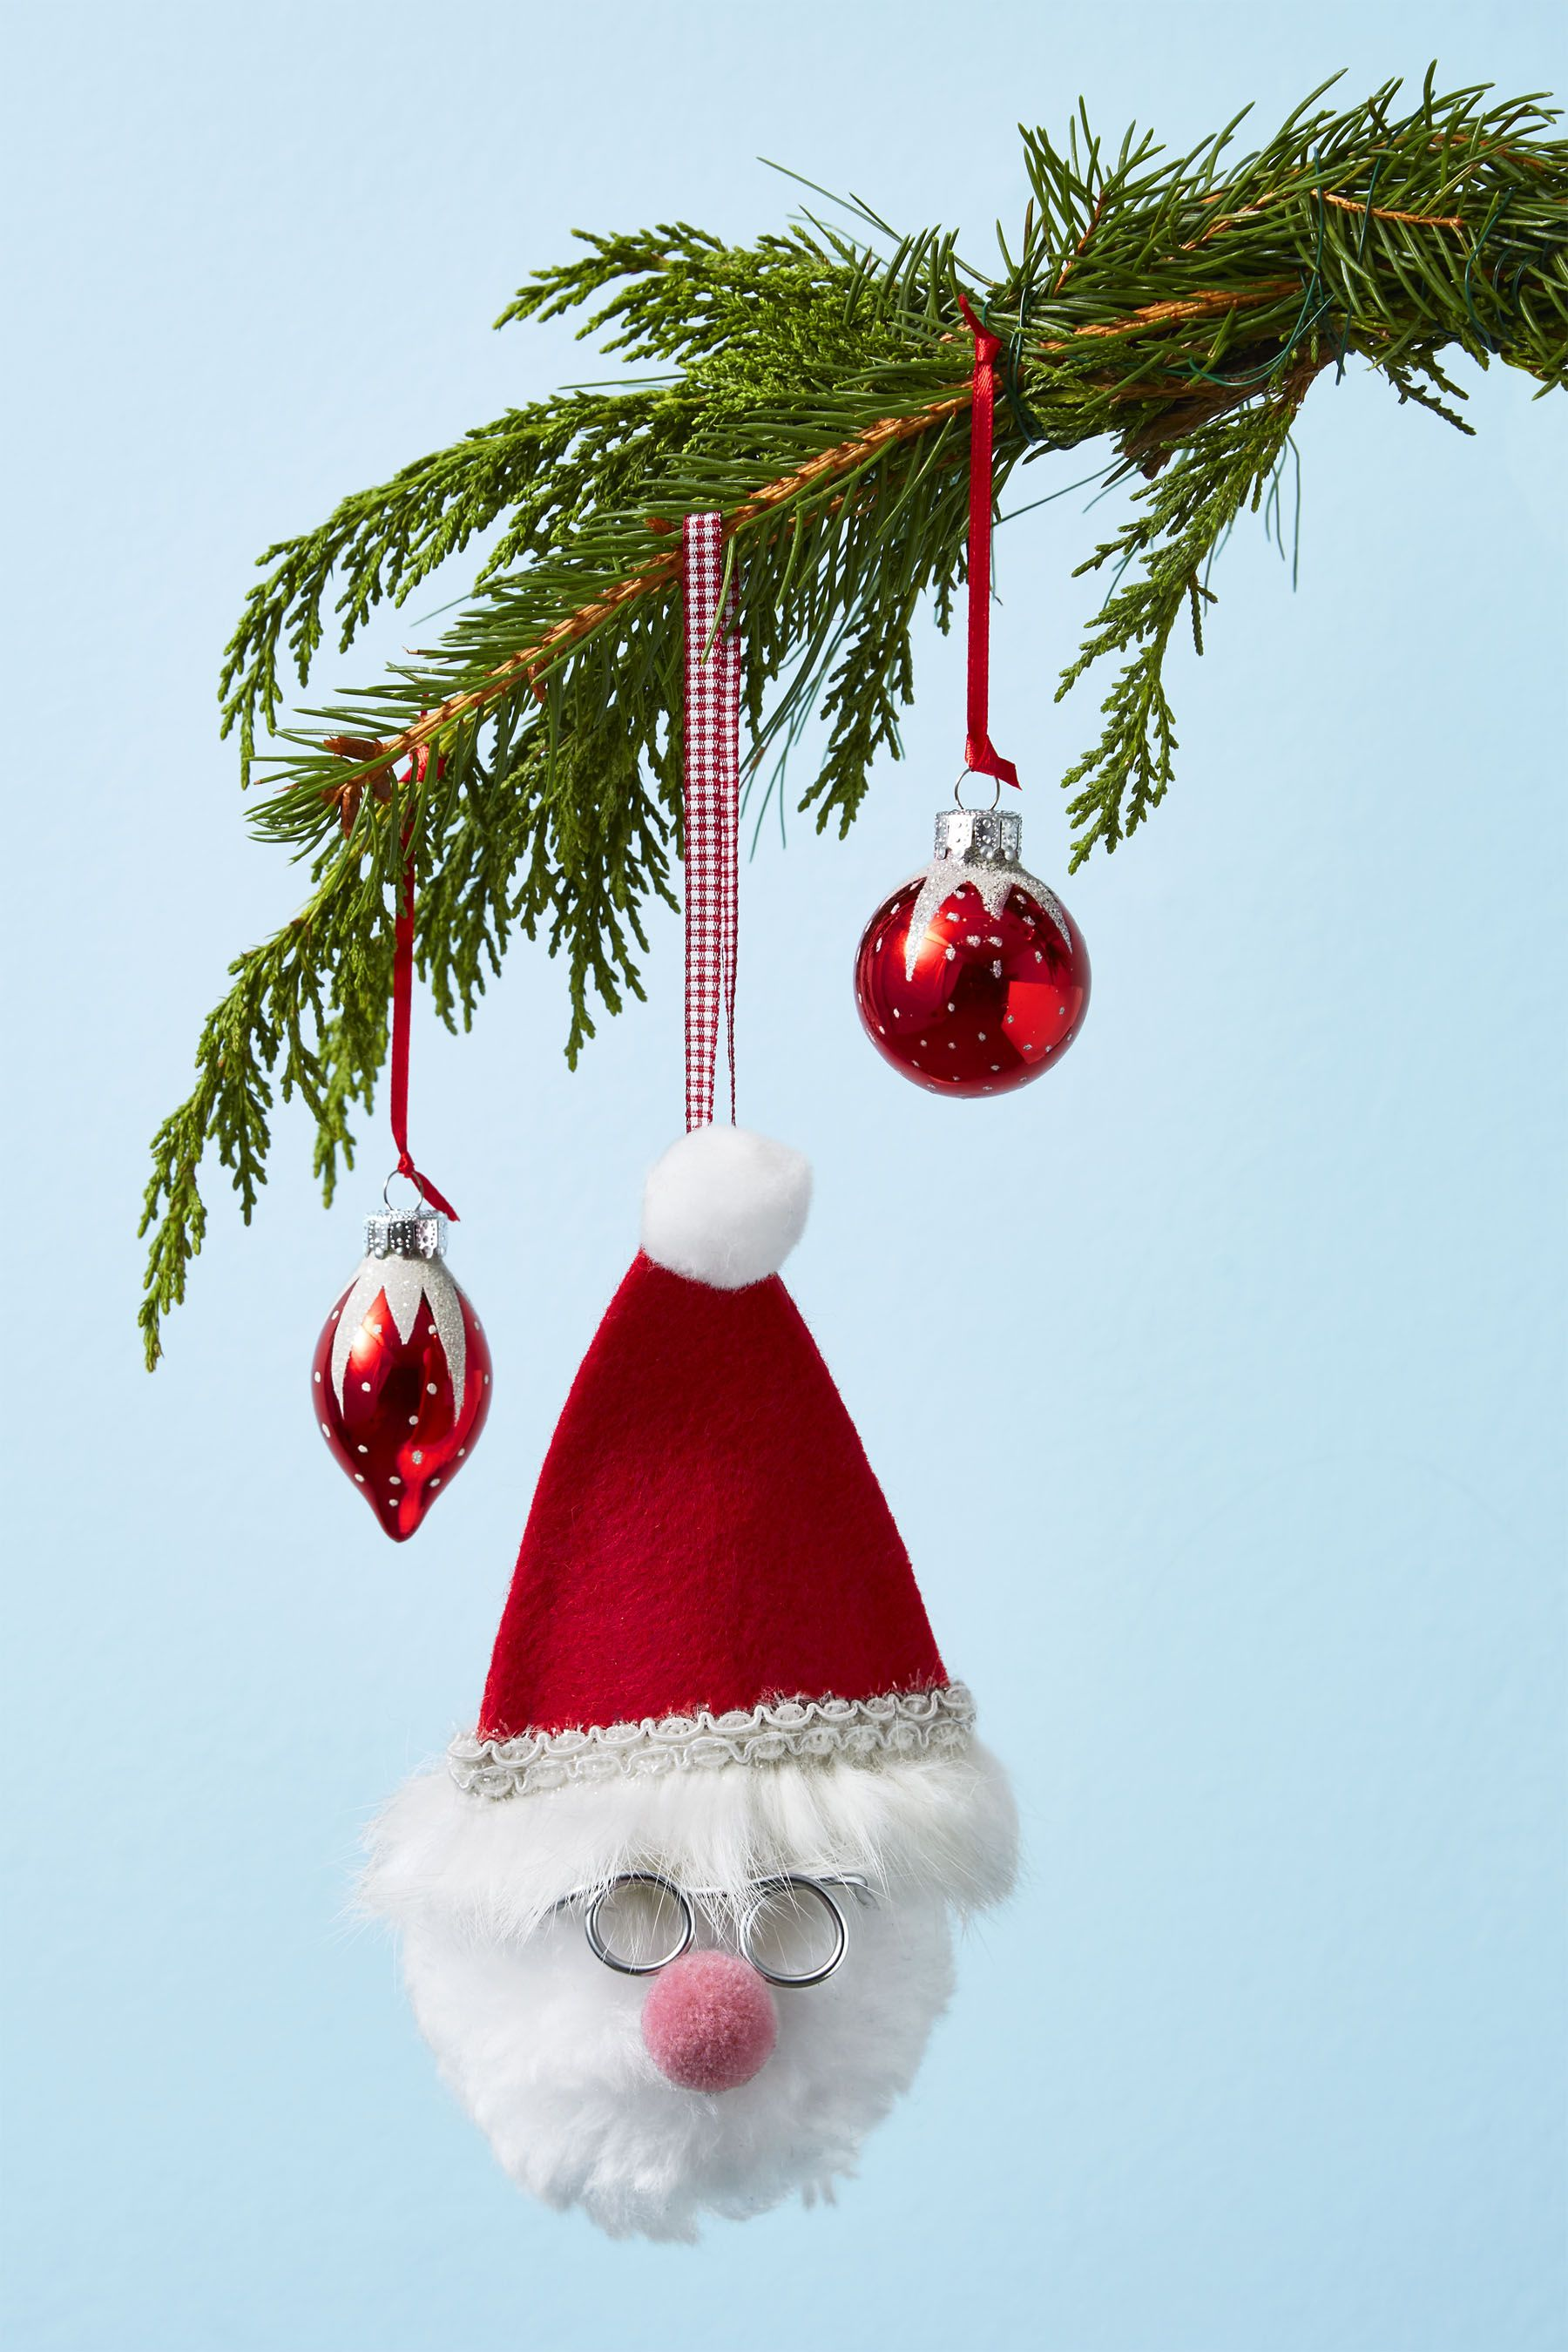 10 Homemade Christmas Ornaments - DIY Handmade Holiday Tree